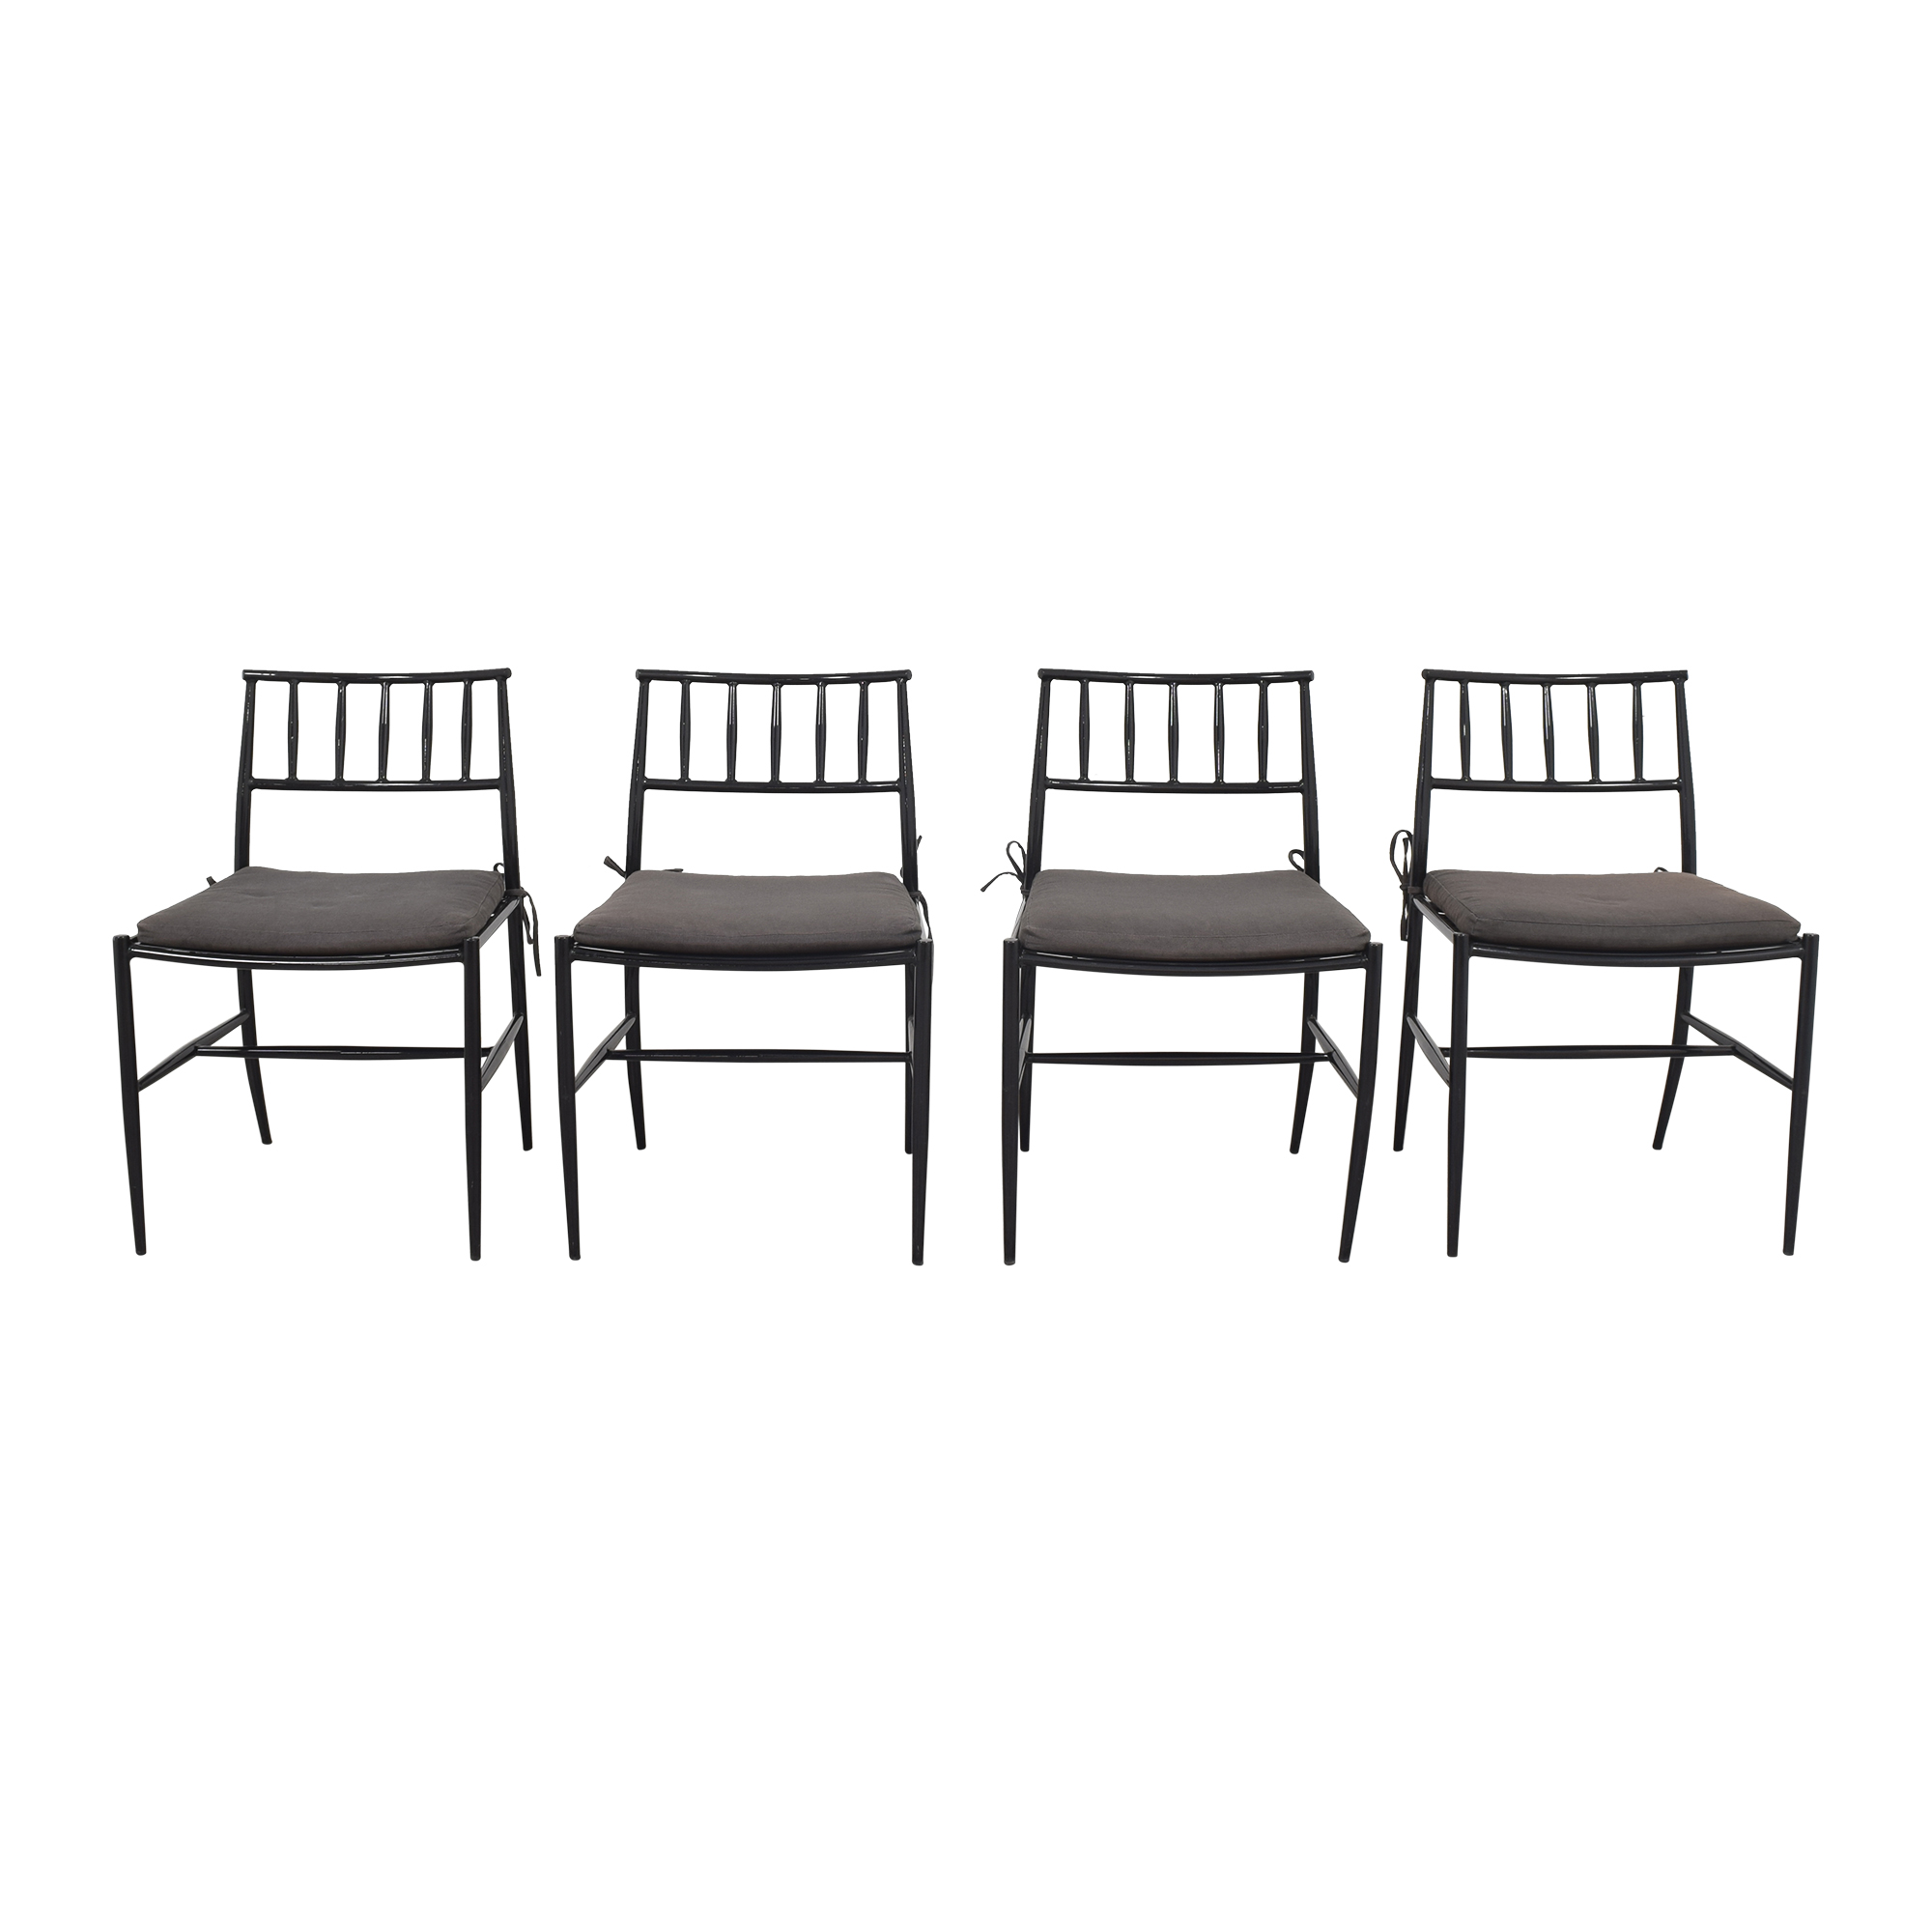 West Elm West Elm Dining Chairs black & grey